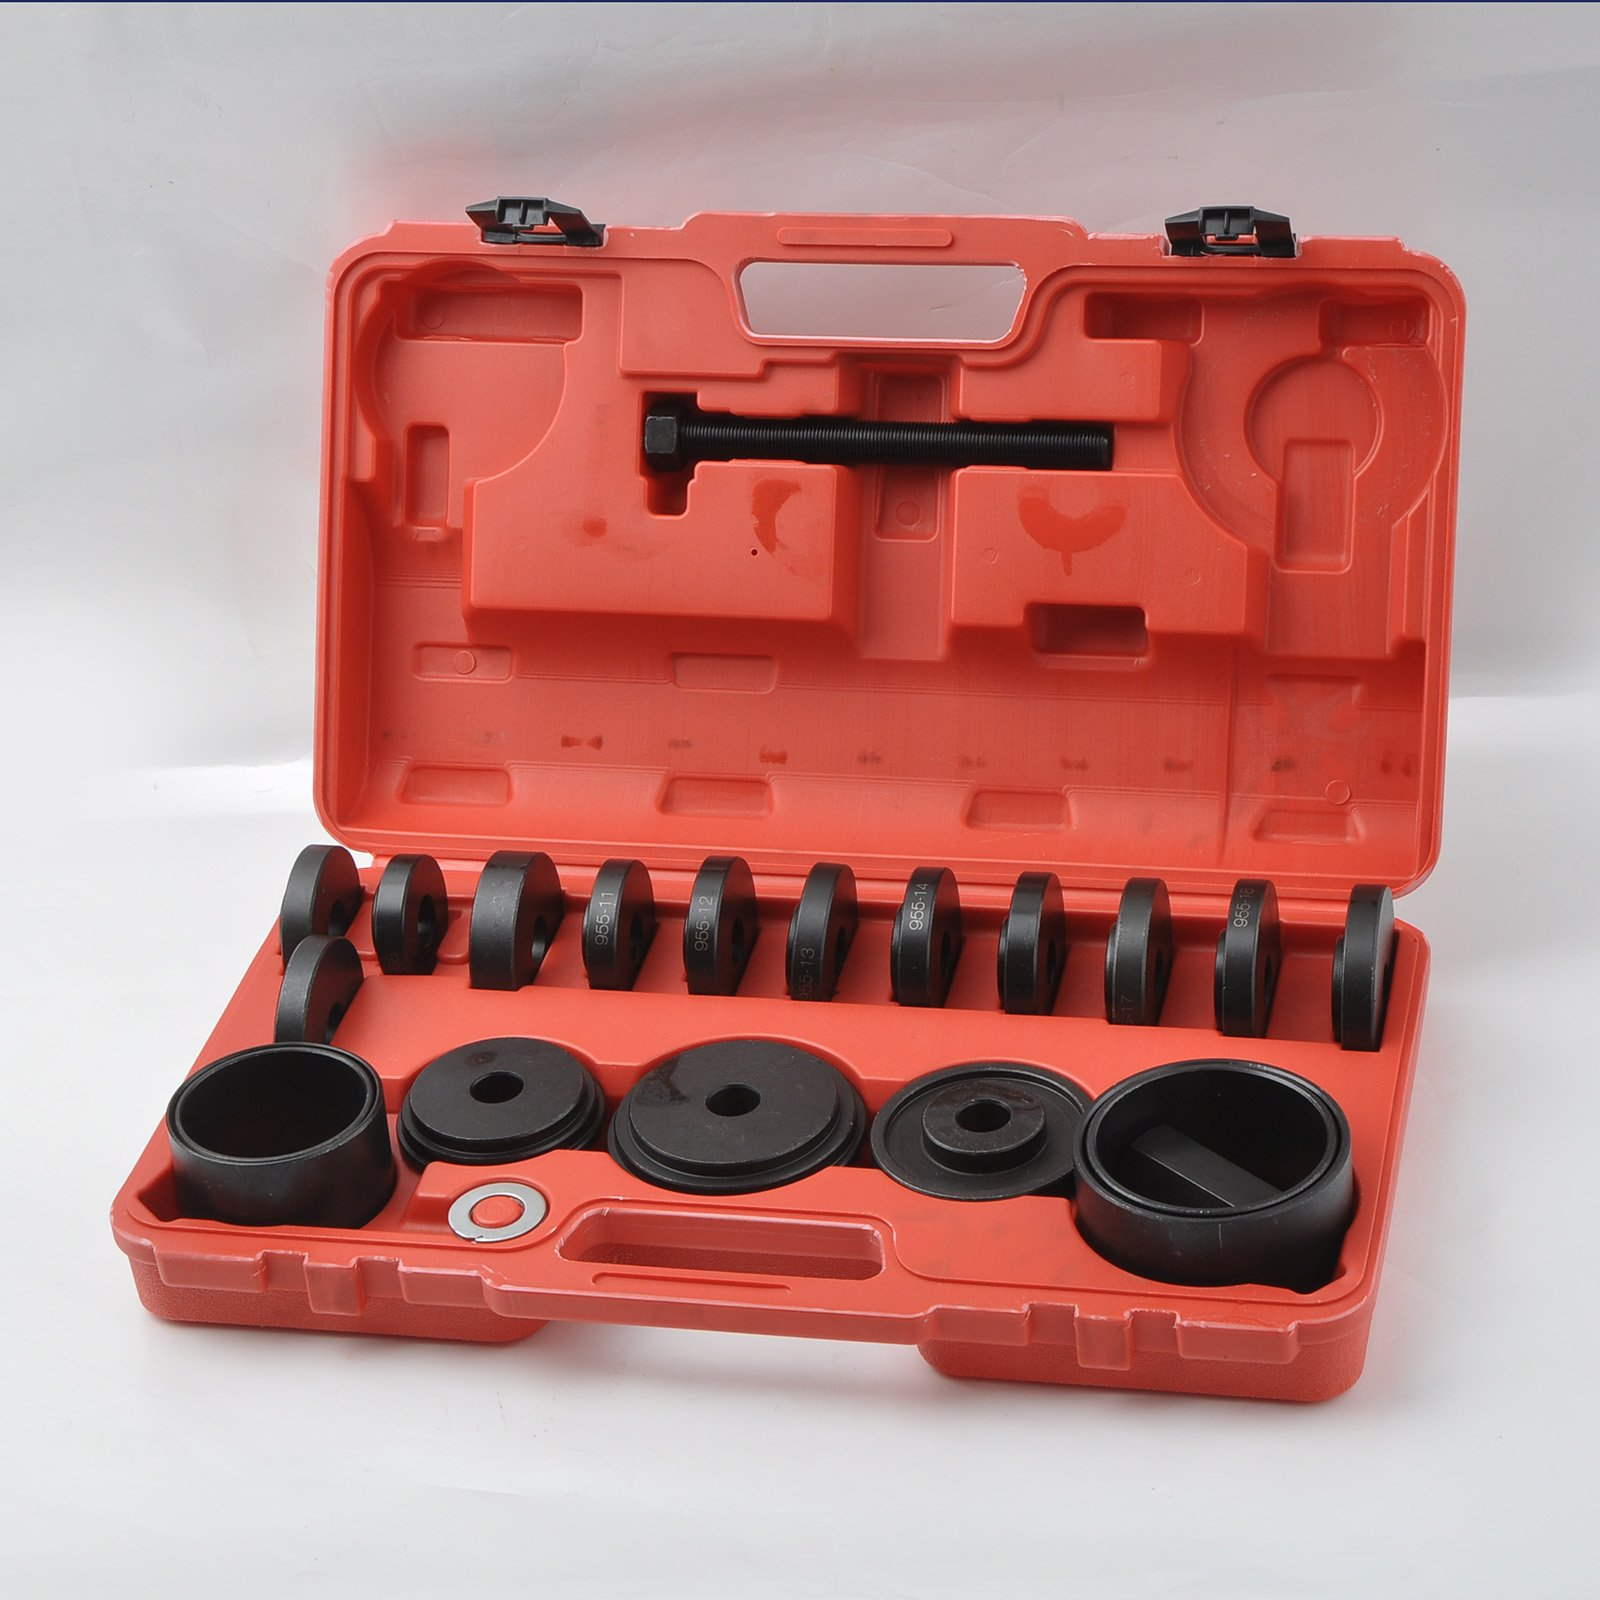 WIN.MAX 23 Pcs FWD Front Wheel Drive Bearing Adapters Puller Press Replacement Installer Removal Tool Kit by WIN.MAX (Image #2)